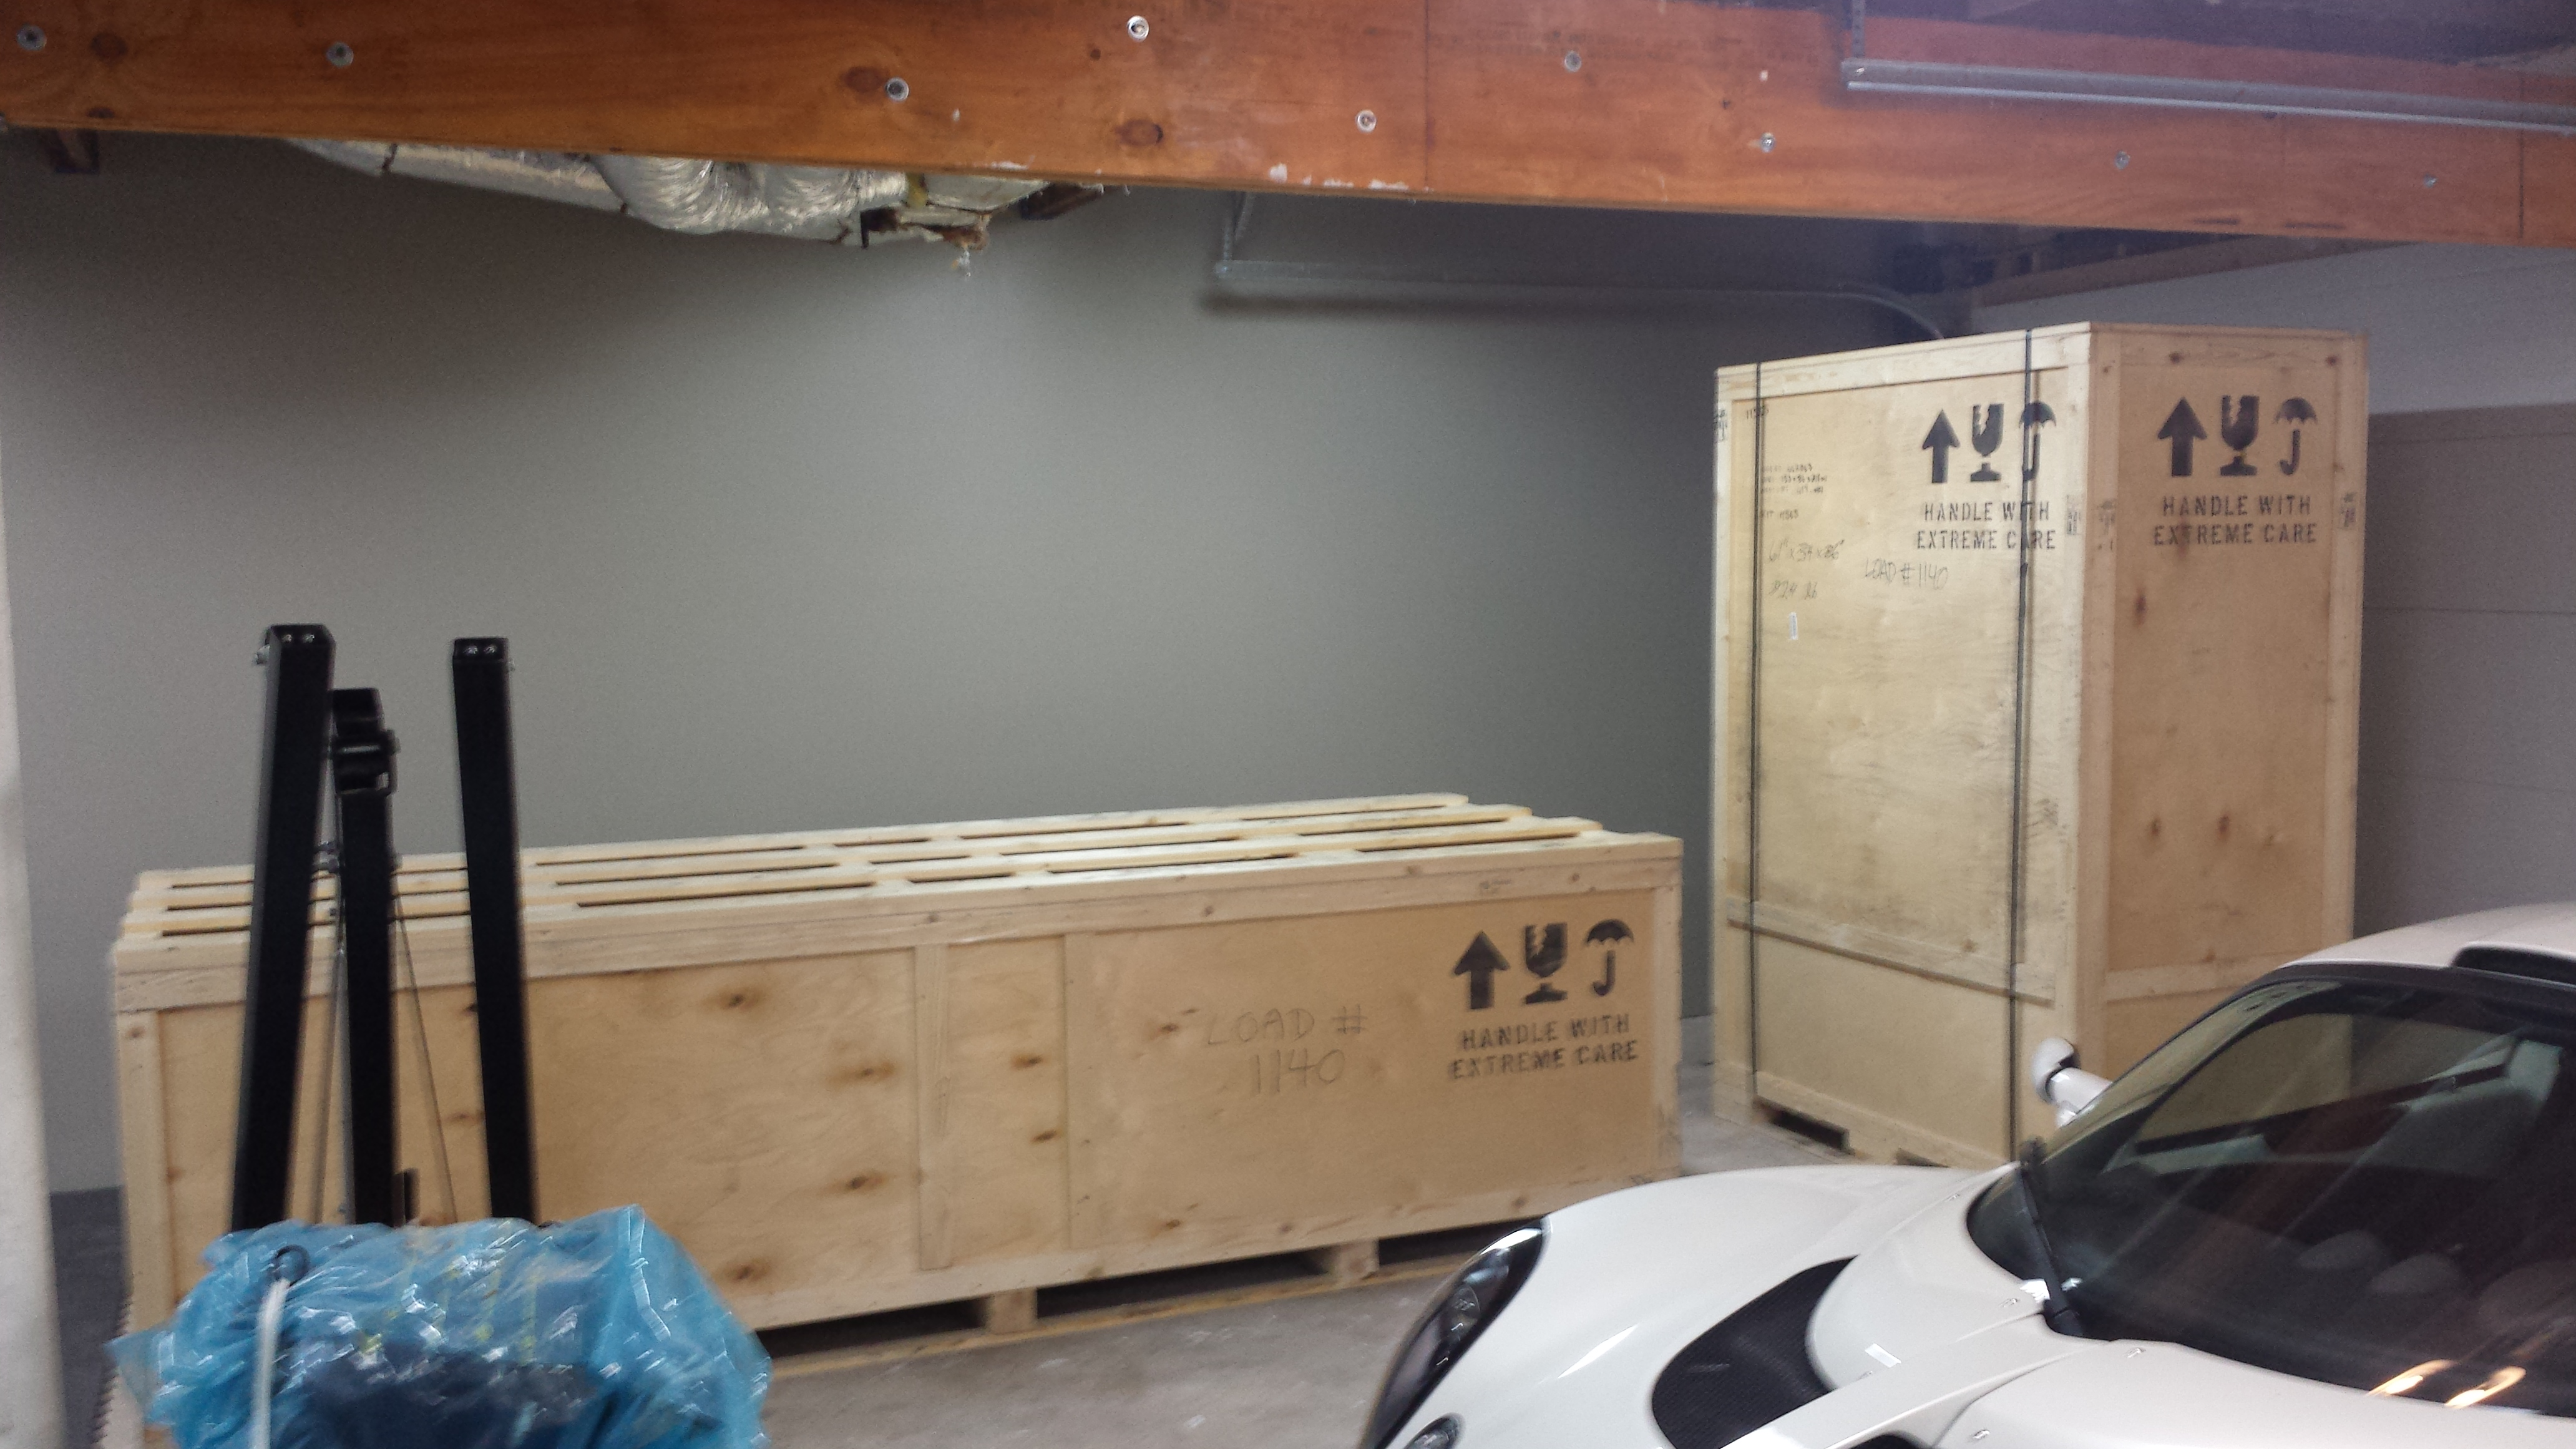 Both boxes in the garage